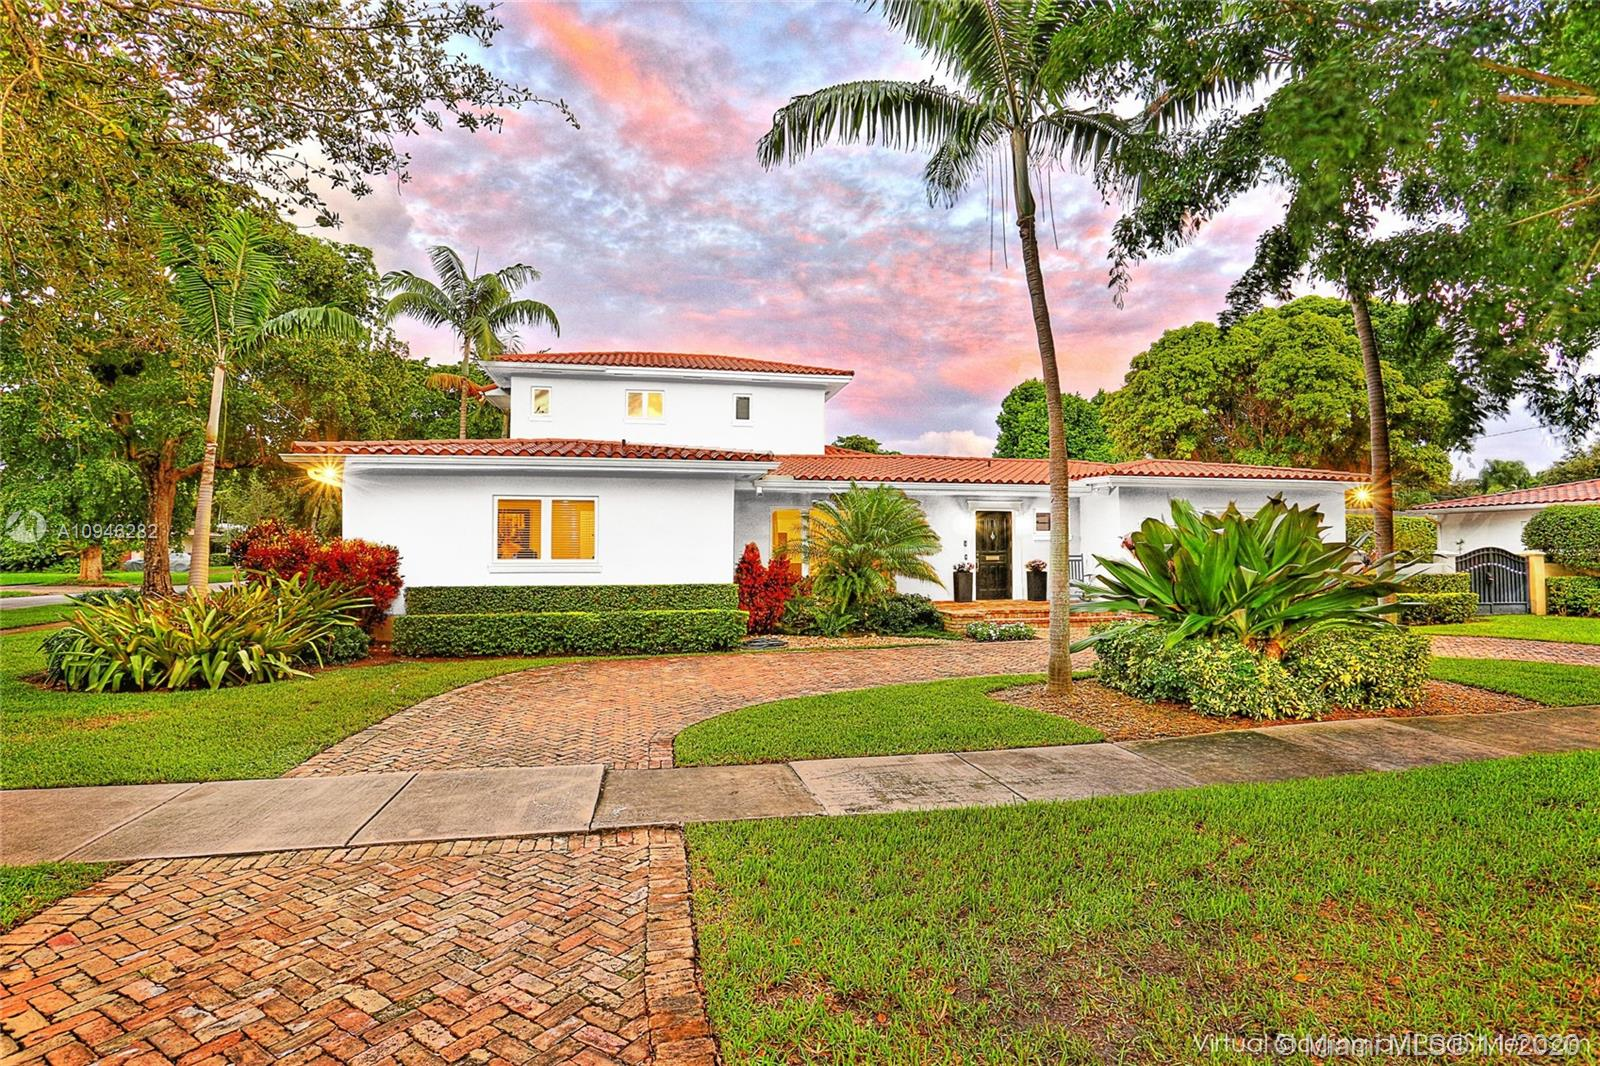 Wonderful 5 BR, 4 BA home on a prestigious & quiet South Gables street.  Beautifully renovated, this spacious home offers high ceilings, hardwood floors, foyer entry, gracious & open liv spaces, impact windows & doors, great split floorplan & stunning pool & patio area.  Formal liv & din rooms create an elegant feeling & offer the perfect entertaining spaces.  Open family room & kitchen, a rarity in the Gables market, offer breakfast nook, 17' x 21' fam rm w/ French doors to pool & patio.  Private upstairs principle BR w/ sitting room, 2 generous closets, spacious BA w/ sep tub & shower & dual vanities.  3 BRs/2 BAs on one wing and separate BR/BA on the other side.  Private 12,500 sf corner lot w/ fabulous outdoor entertaining spaces.  Laundry room, 1 car gar w/ storage, circular drive.